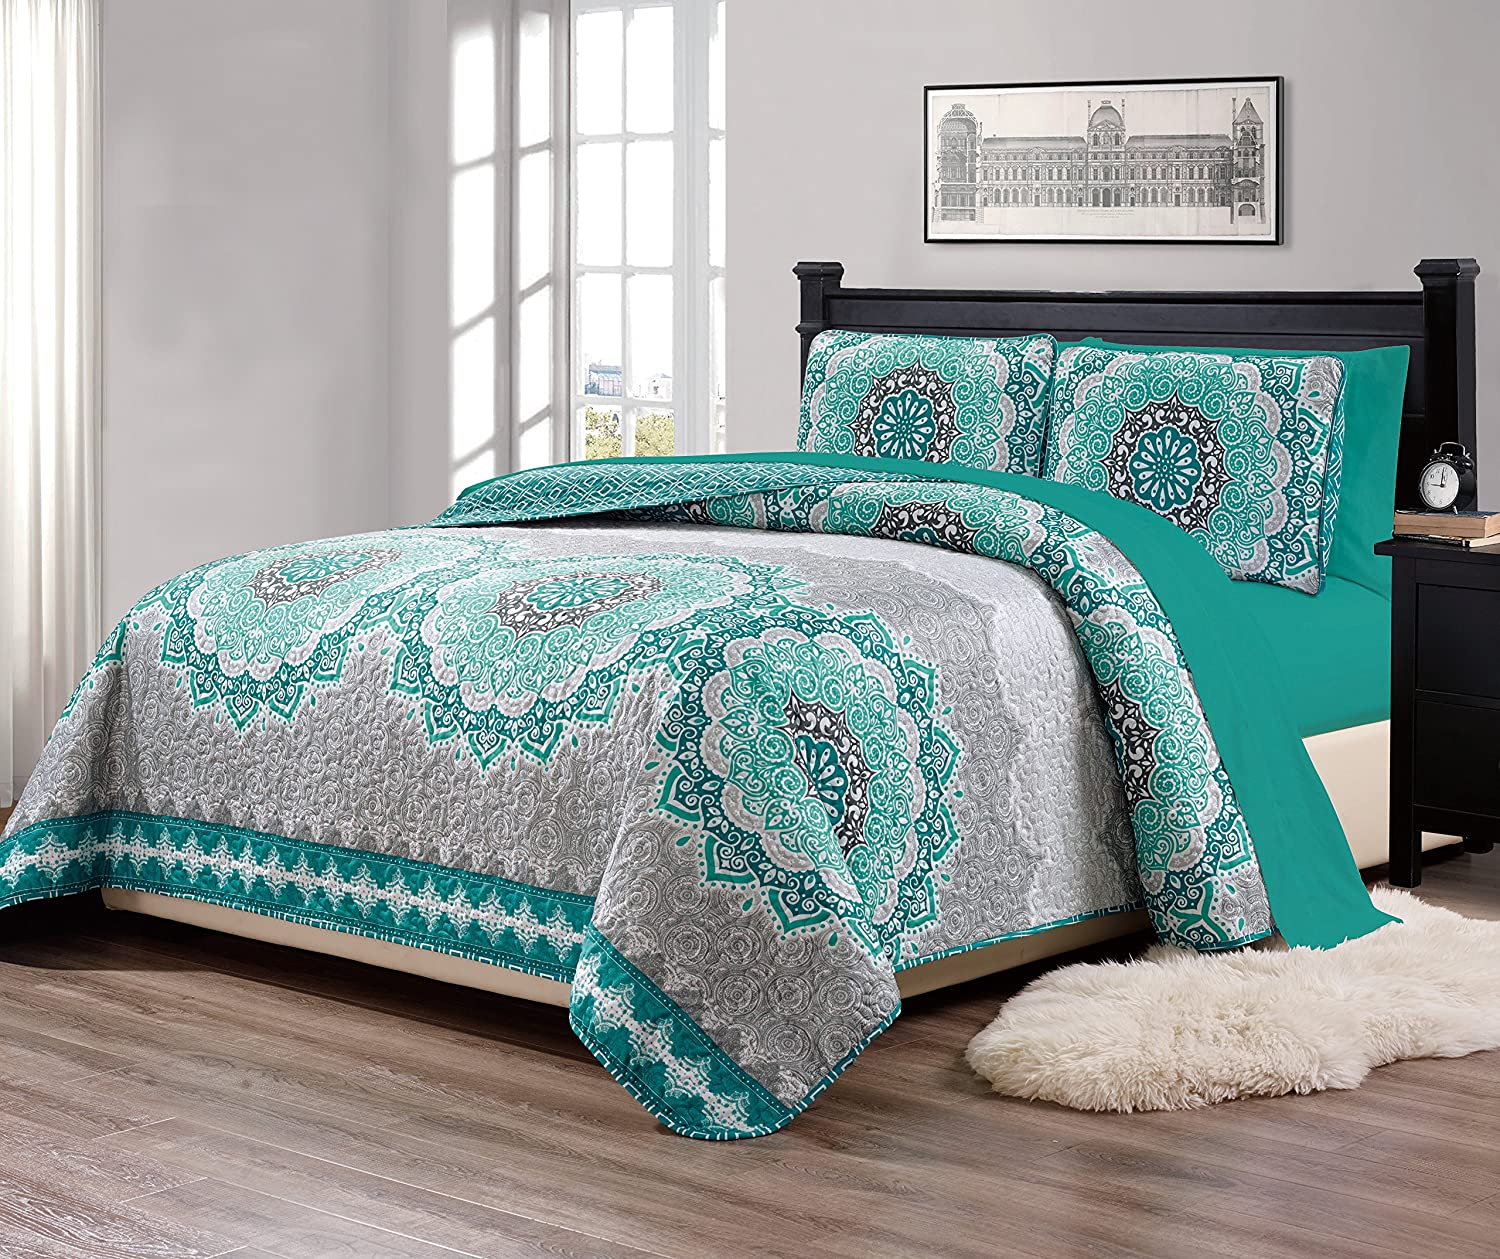 Fancy Collection 3 Pc Full/Queen Over Size Quilted Bedspread Set Aqua Turquoise Coastal Plain/